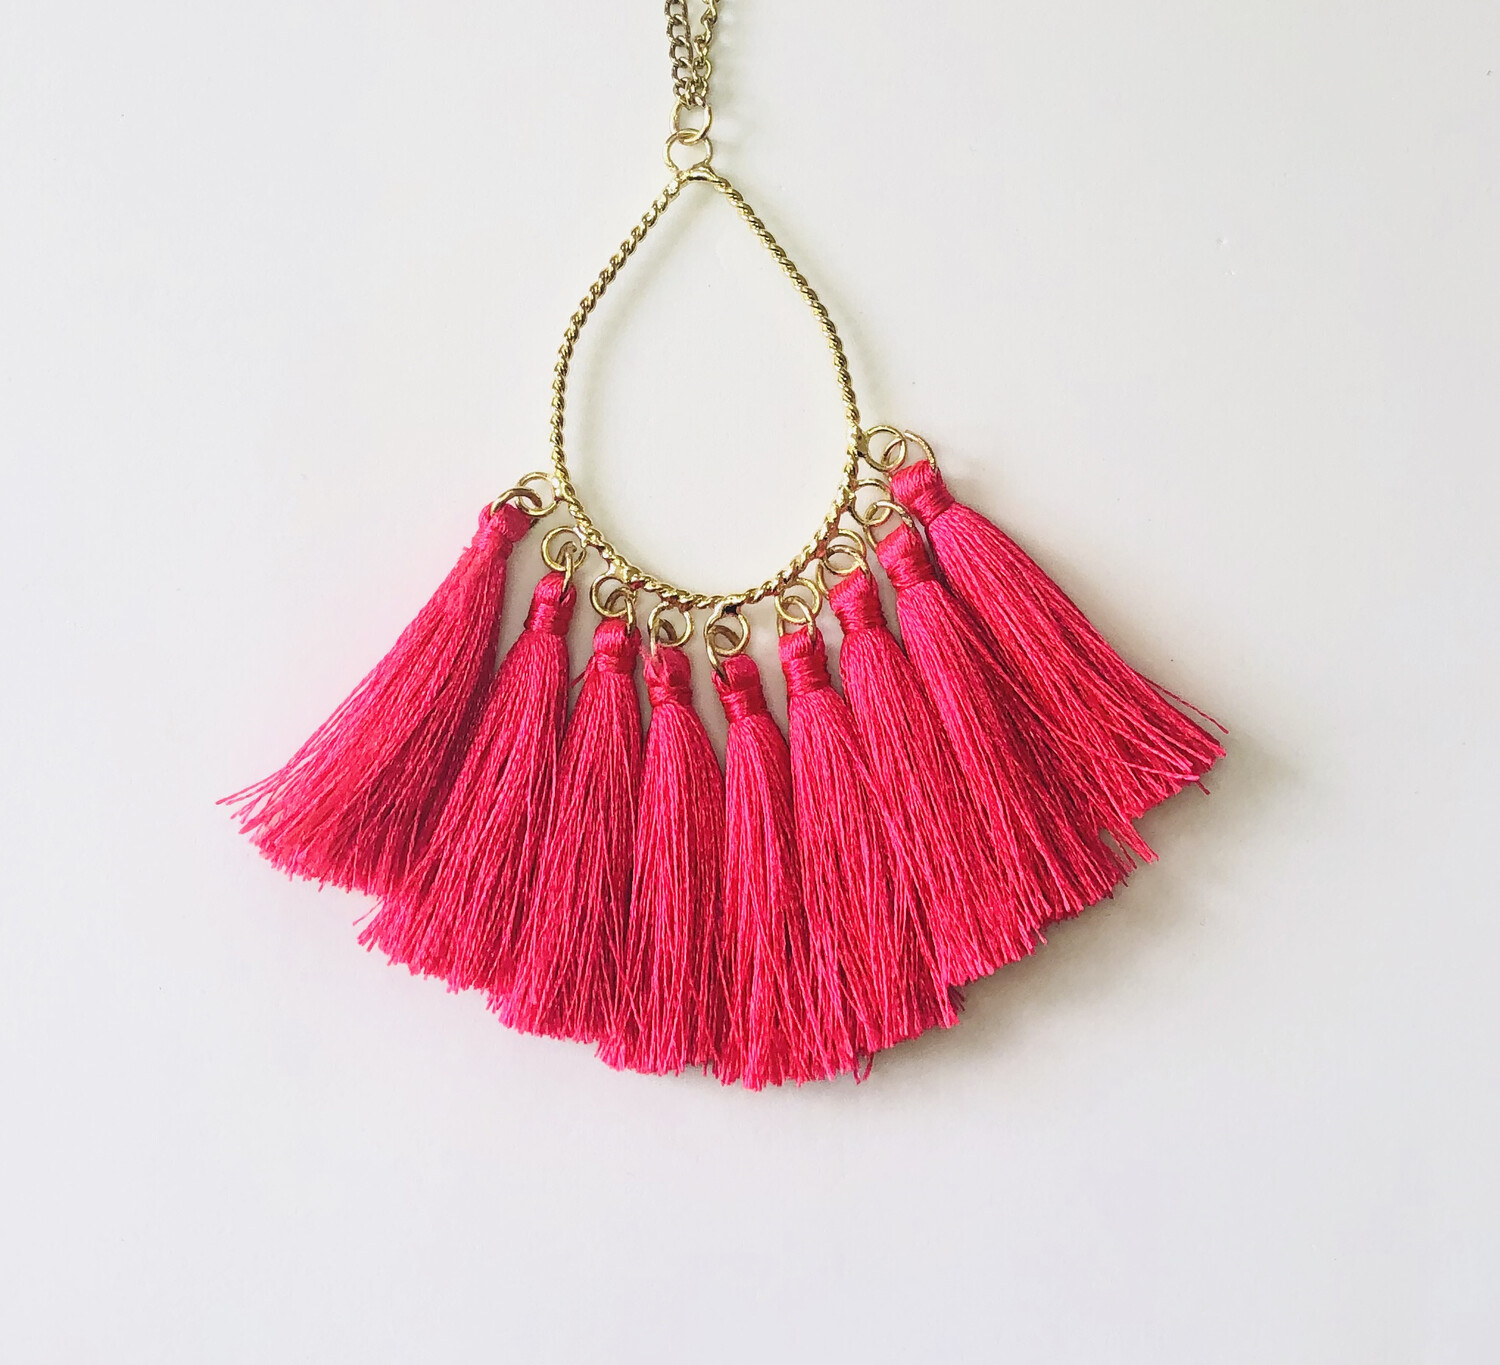 Hattie Tassel, Pink (more arriving soon)